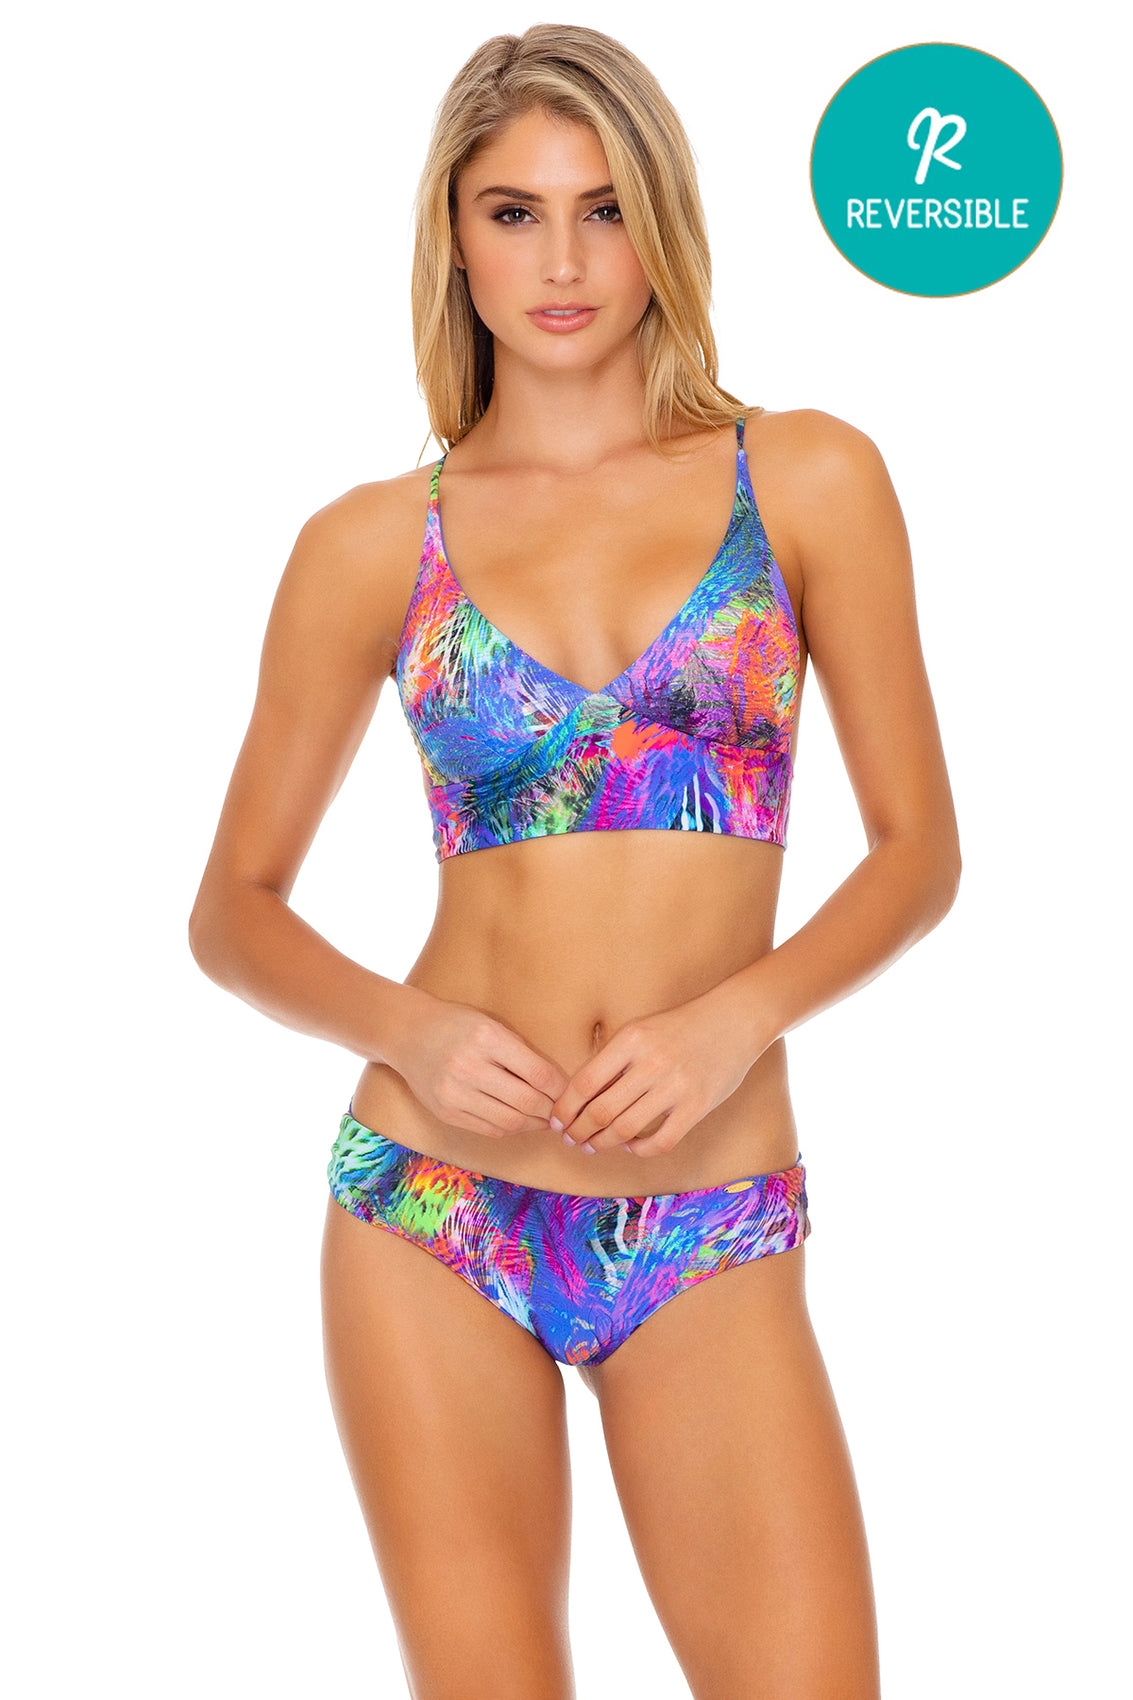 ISLA HOLBOX - Cross Back Bustier Top & Seamless Full Ruched Back Bottom • Multicolor (3924818329702)